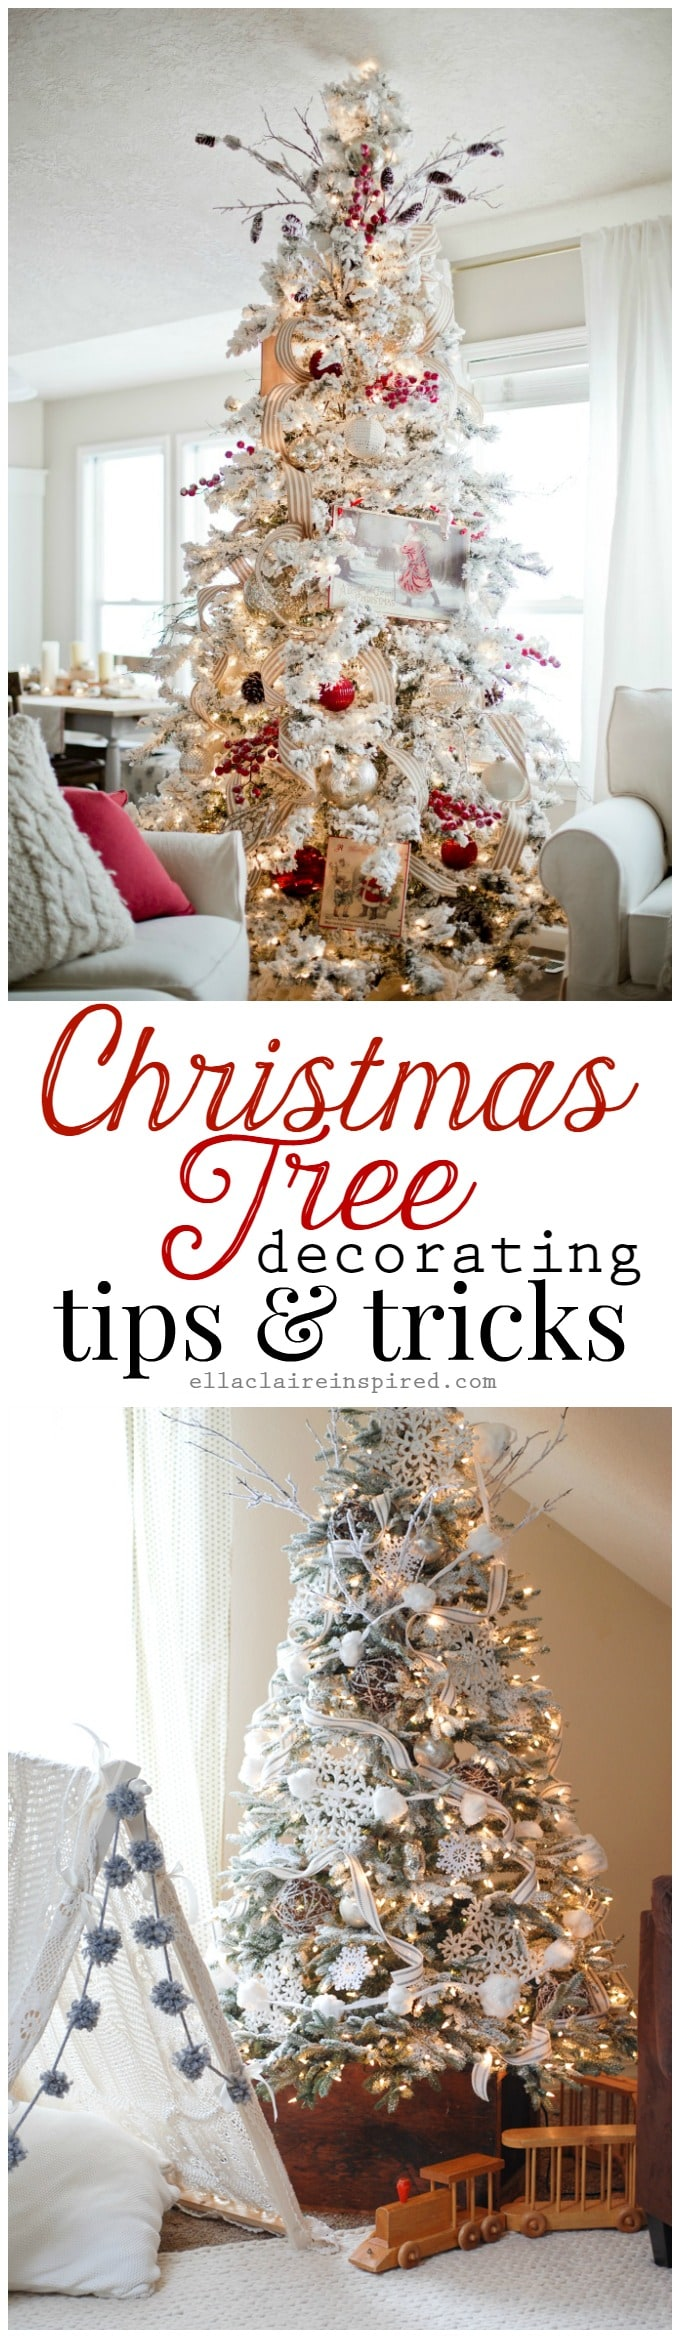 the best tips and tricks to create a gorgeous christmas tree for your home this holiday